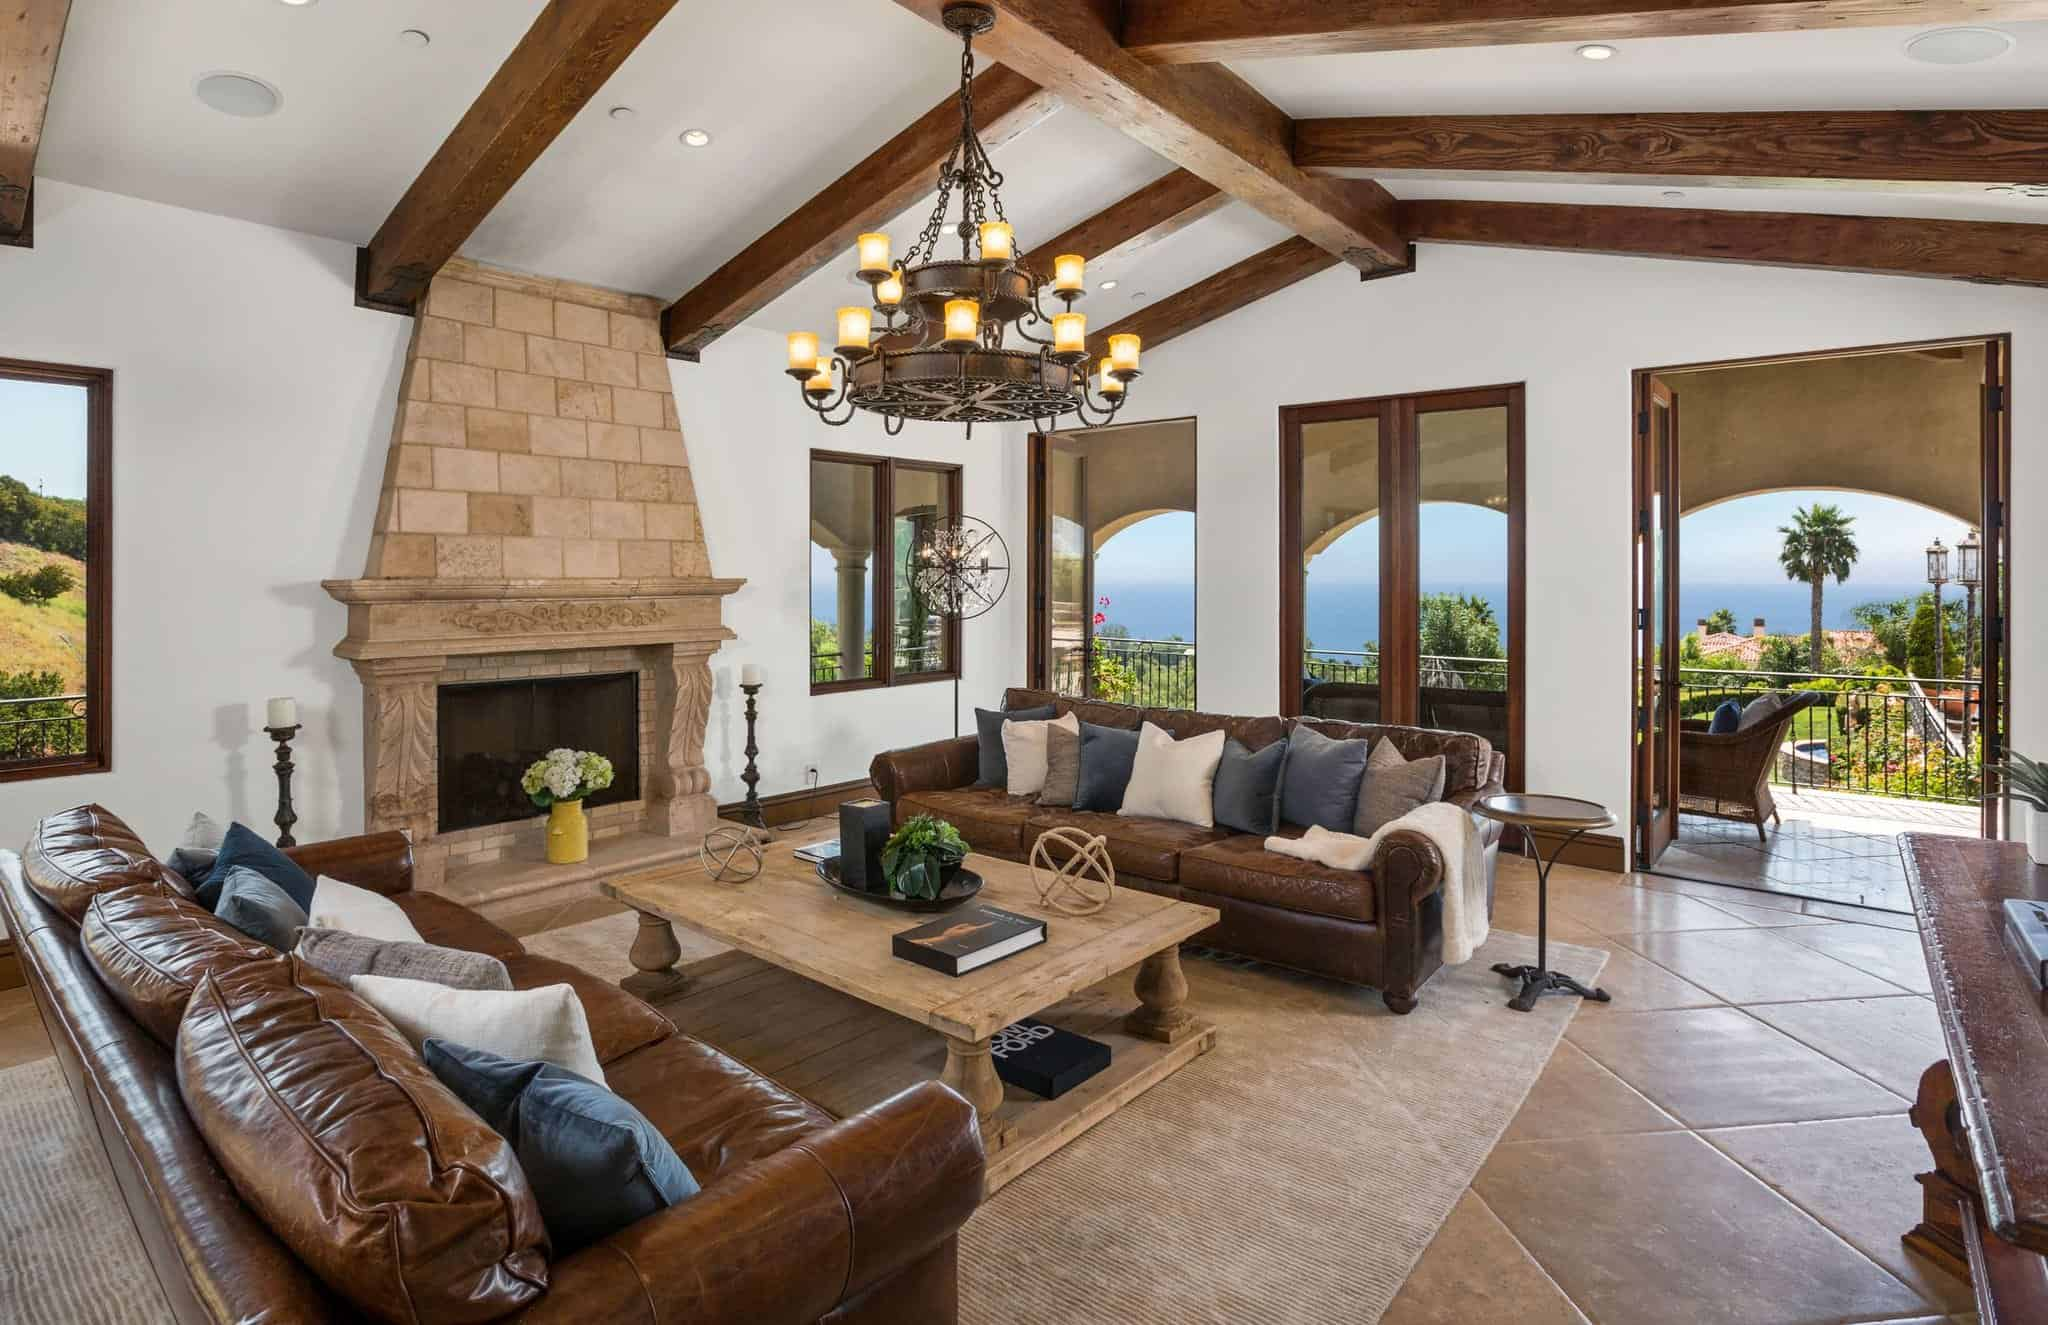 The living space features an elegant sofa set lighted by a chandelier and a fireplace keeping the temperature warm. There's also a way into the balcony patio.